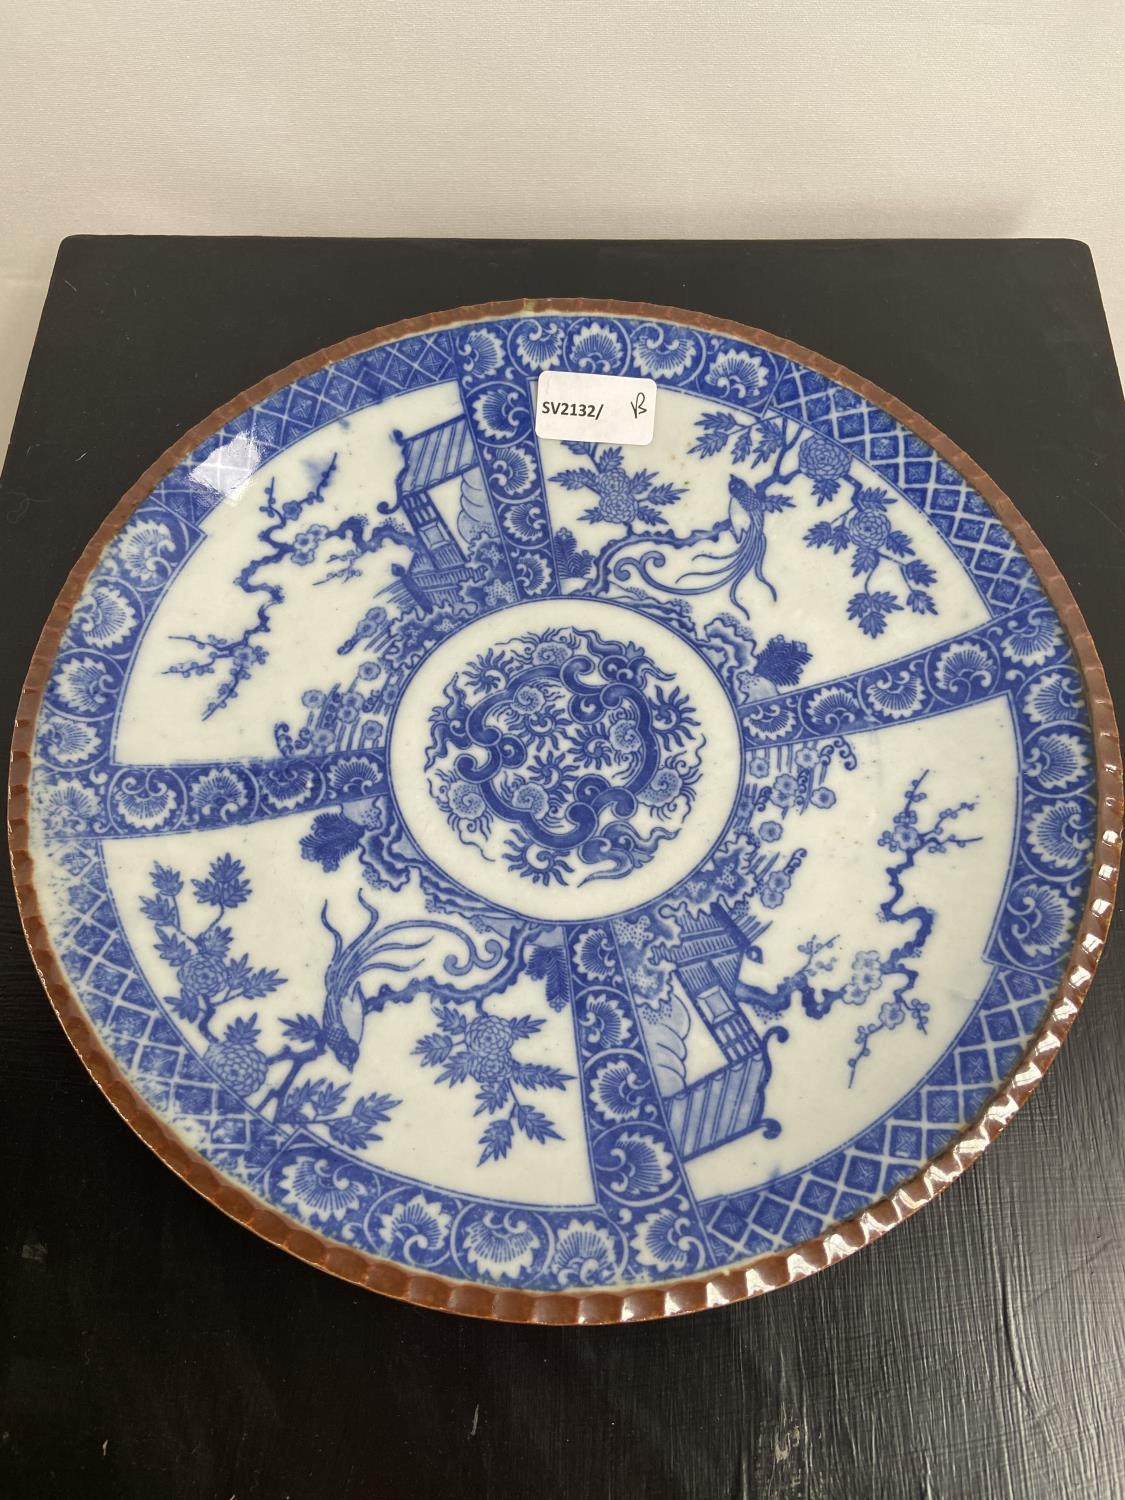 A Japanese blue and white design charger, showing Yamatoku impressed marking to the base. [